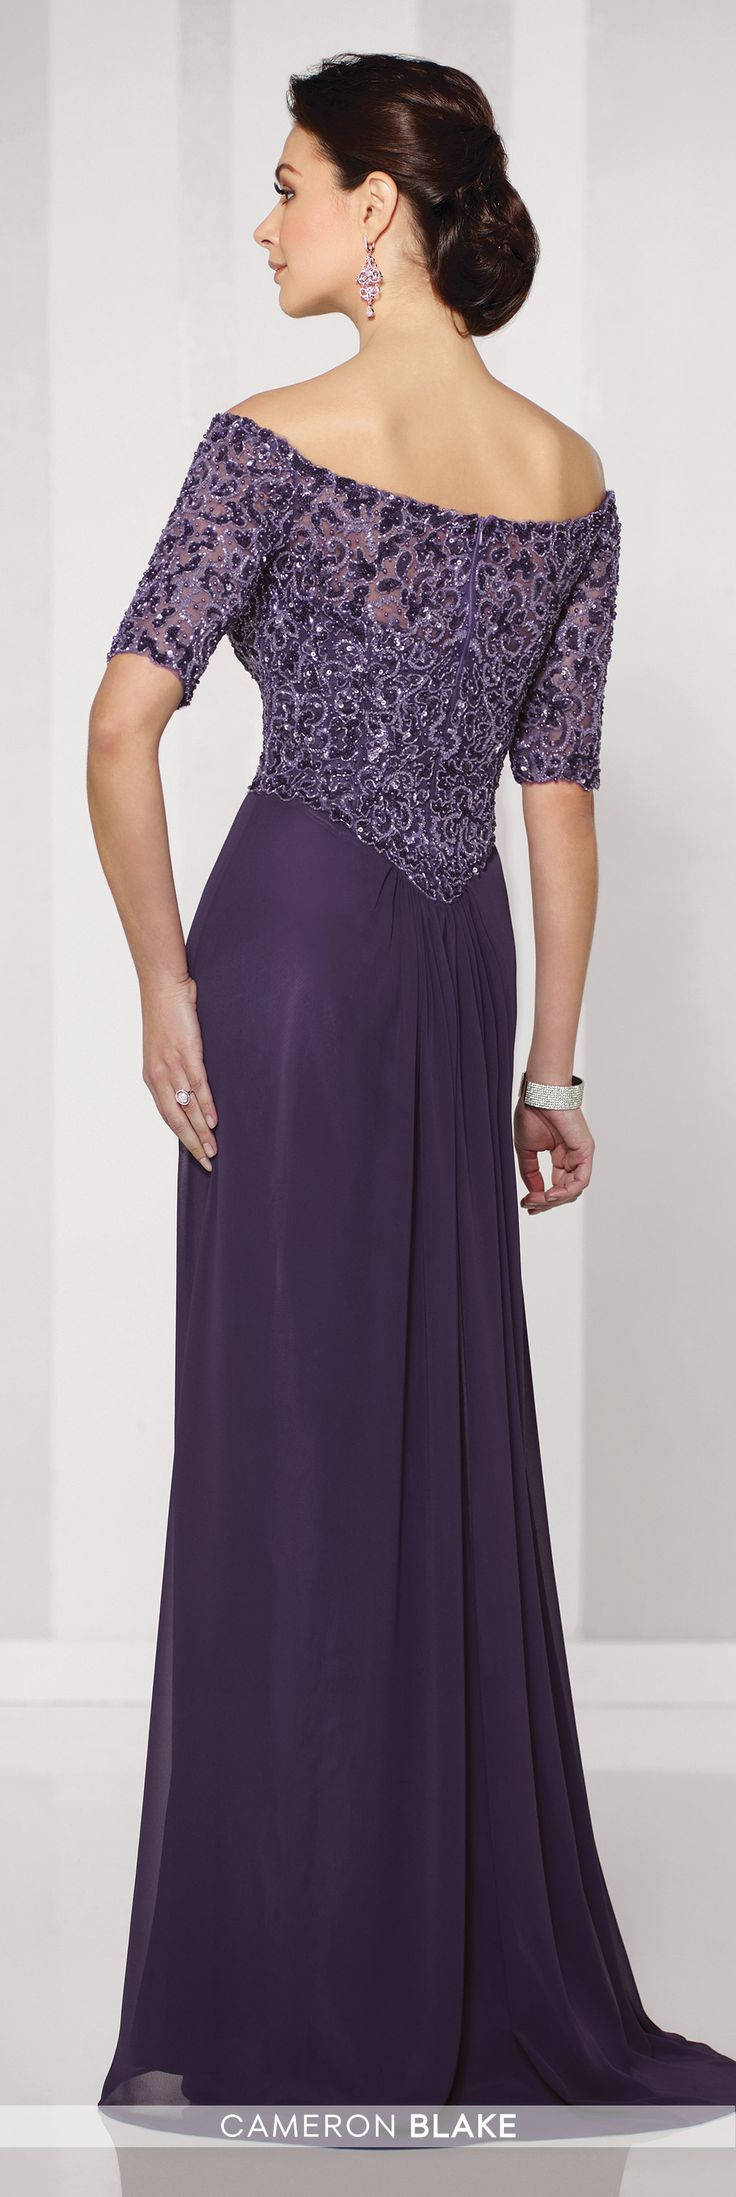 Formal Evening Gowns by Mon Cheri - Fall 2016 - Style No. 216687 - purple chiffon evening dress with off the shoulder beaded bodice and elbow length sleeves